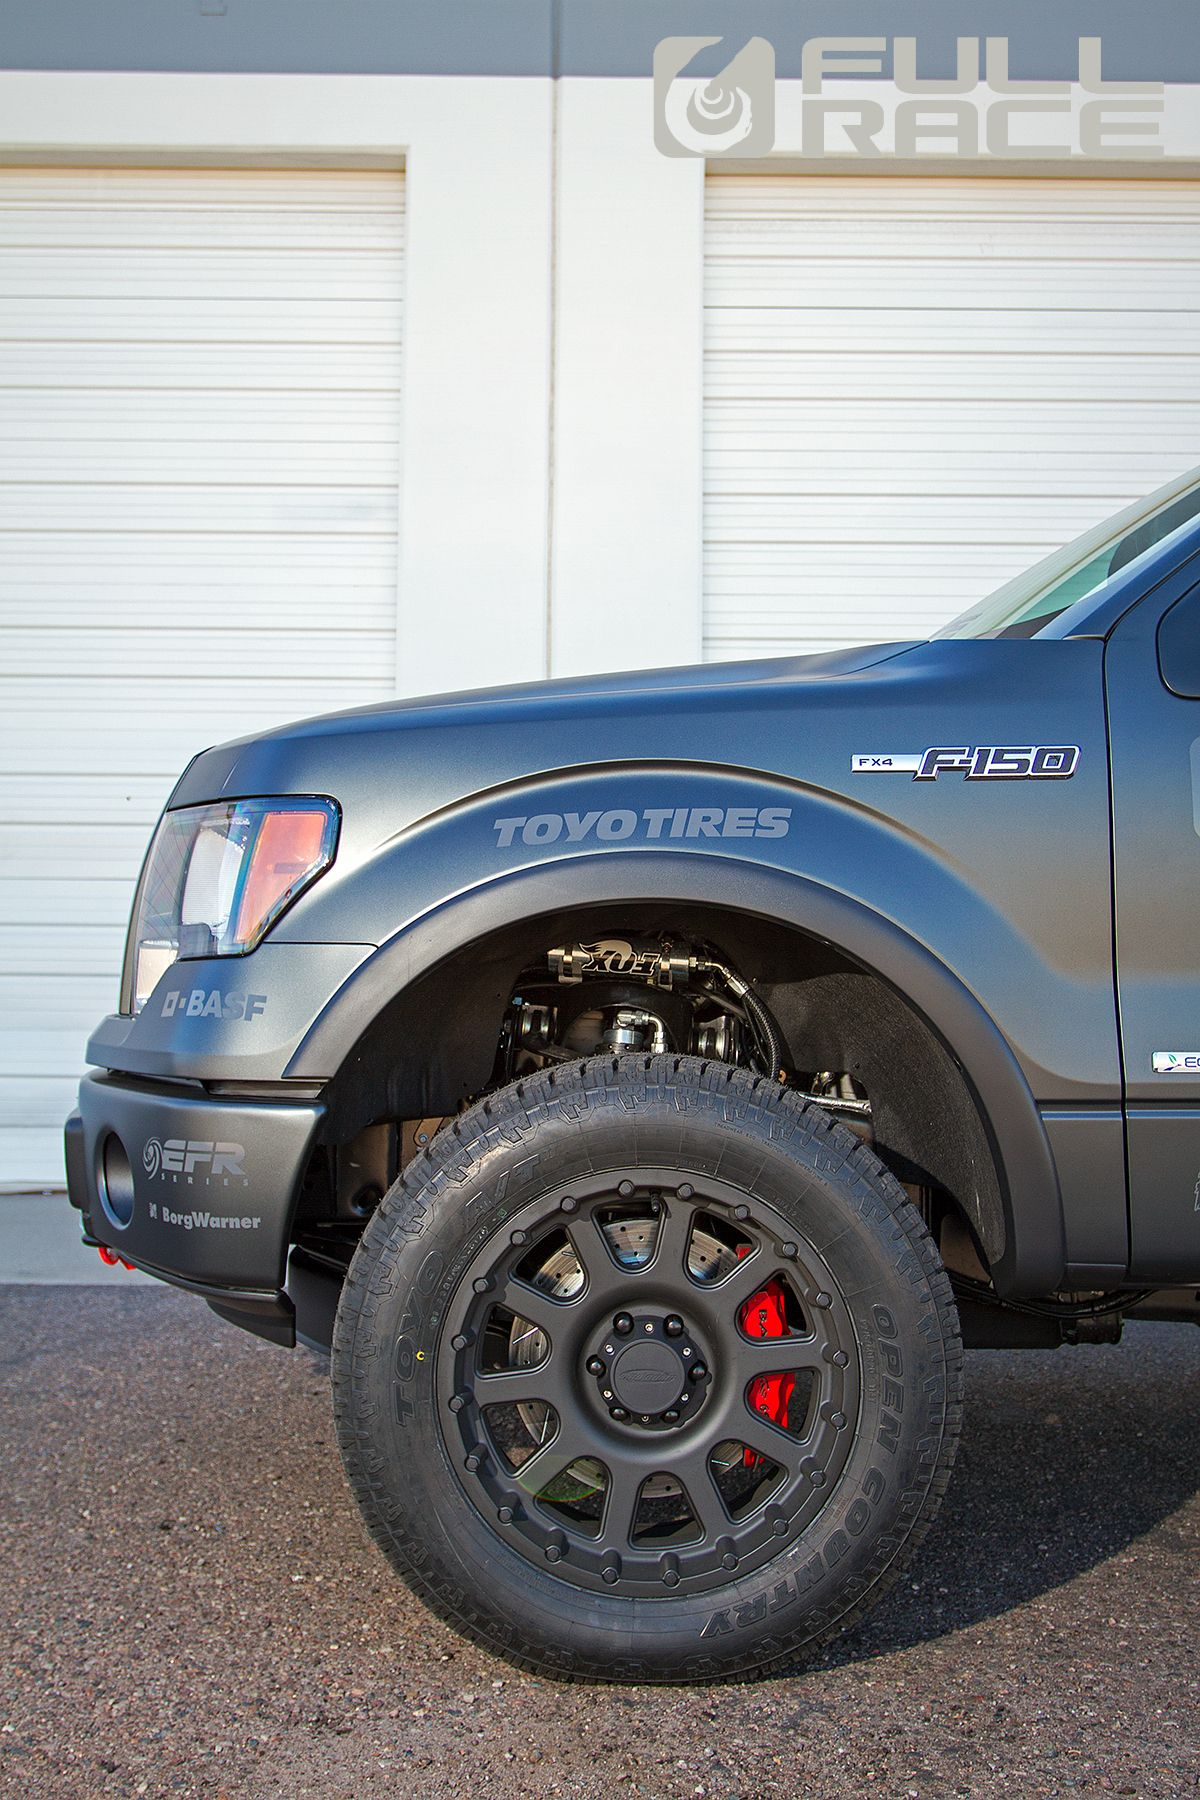 Charcoal Grey Truck : charcoal, truck, F-150, Review, Motor, Trend, Diesel, Trucks, Ford,, F150,